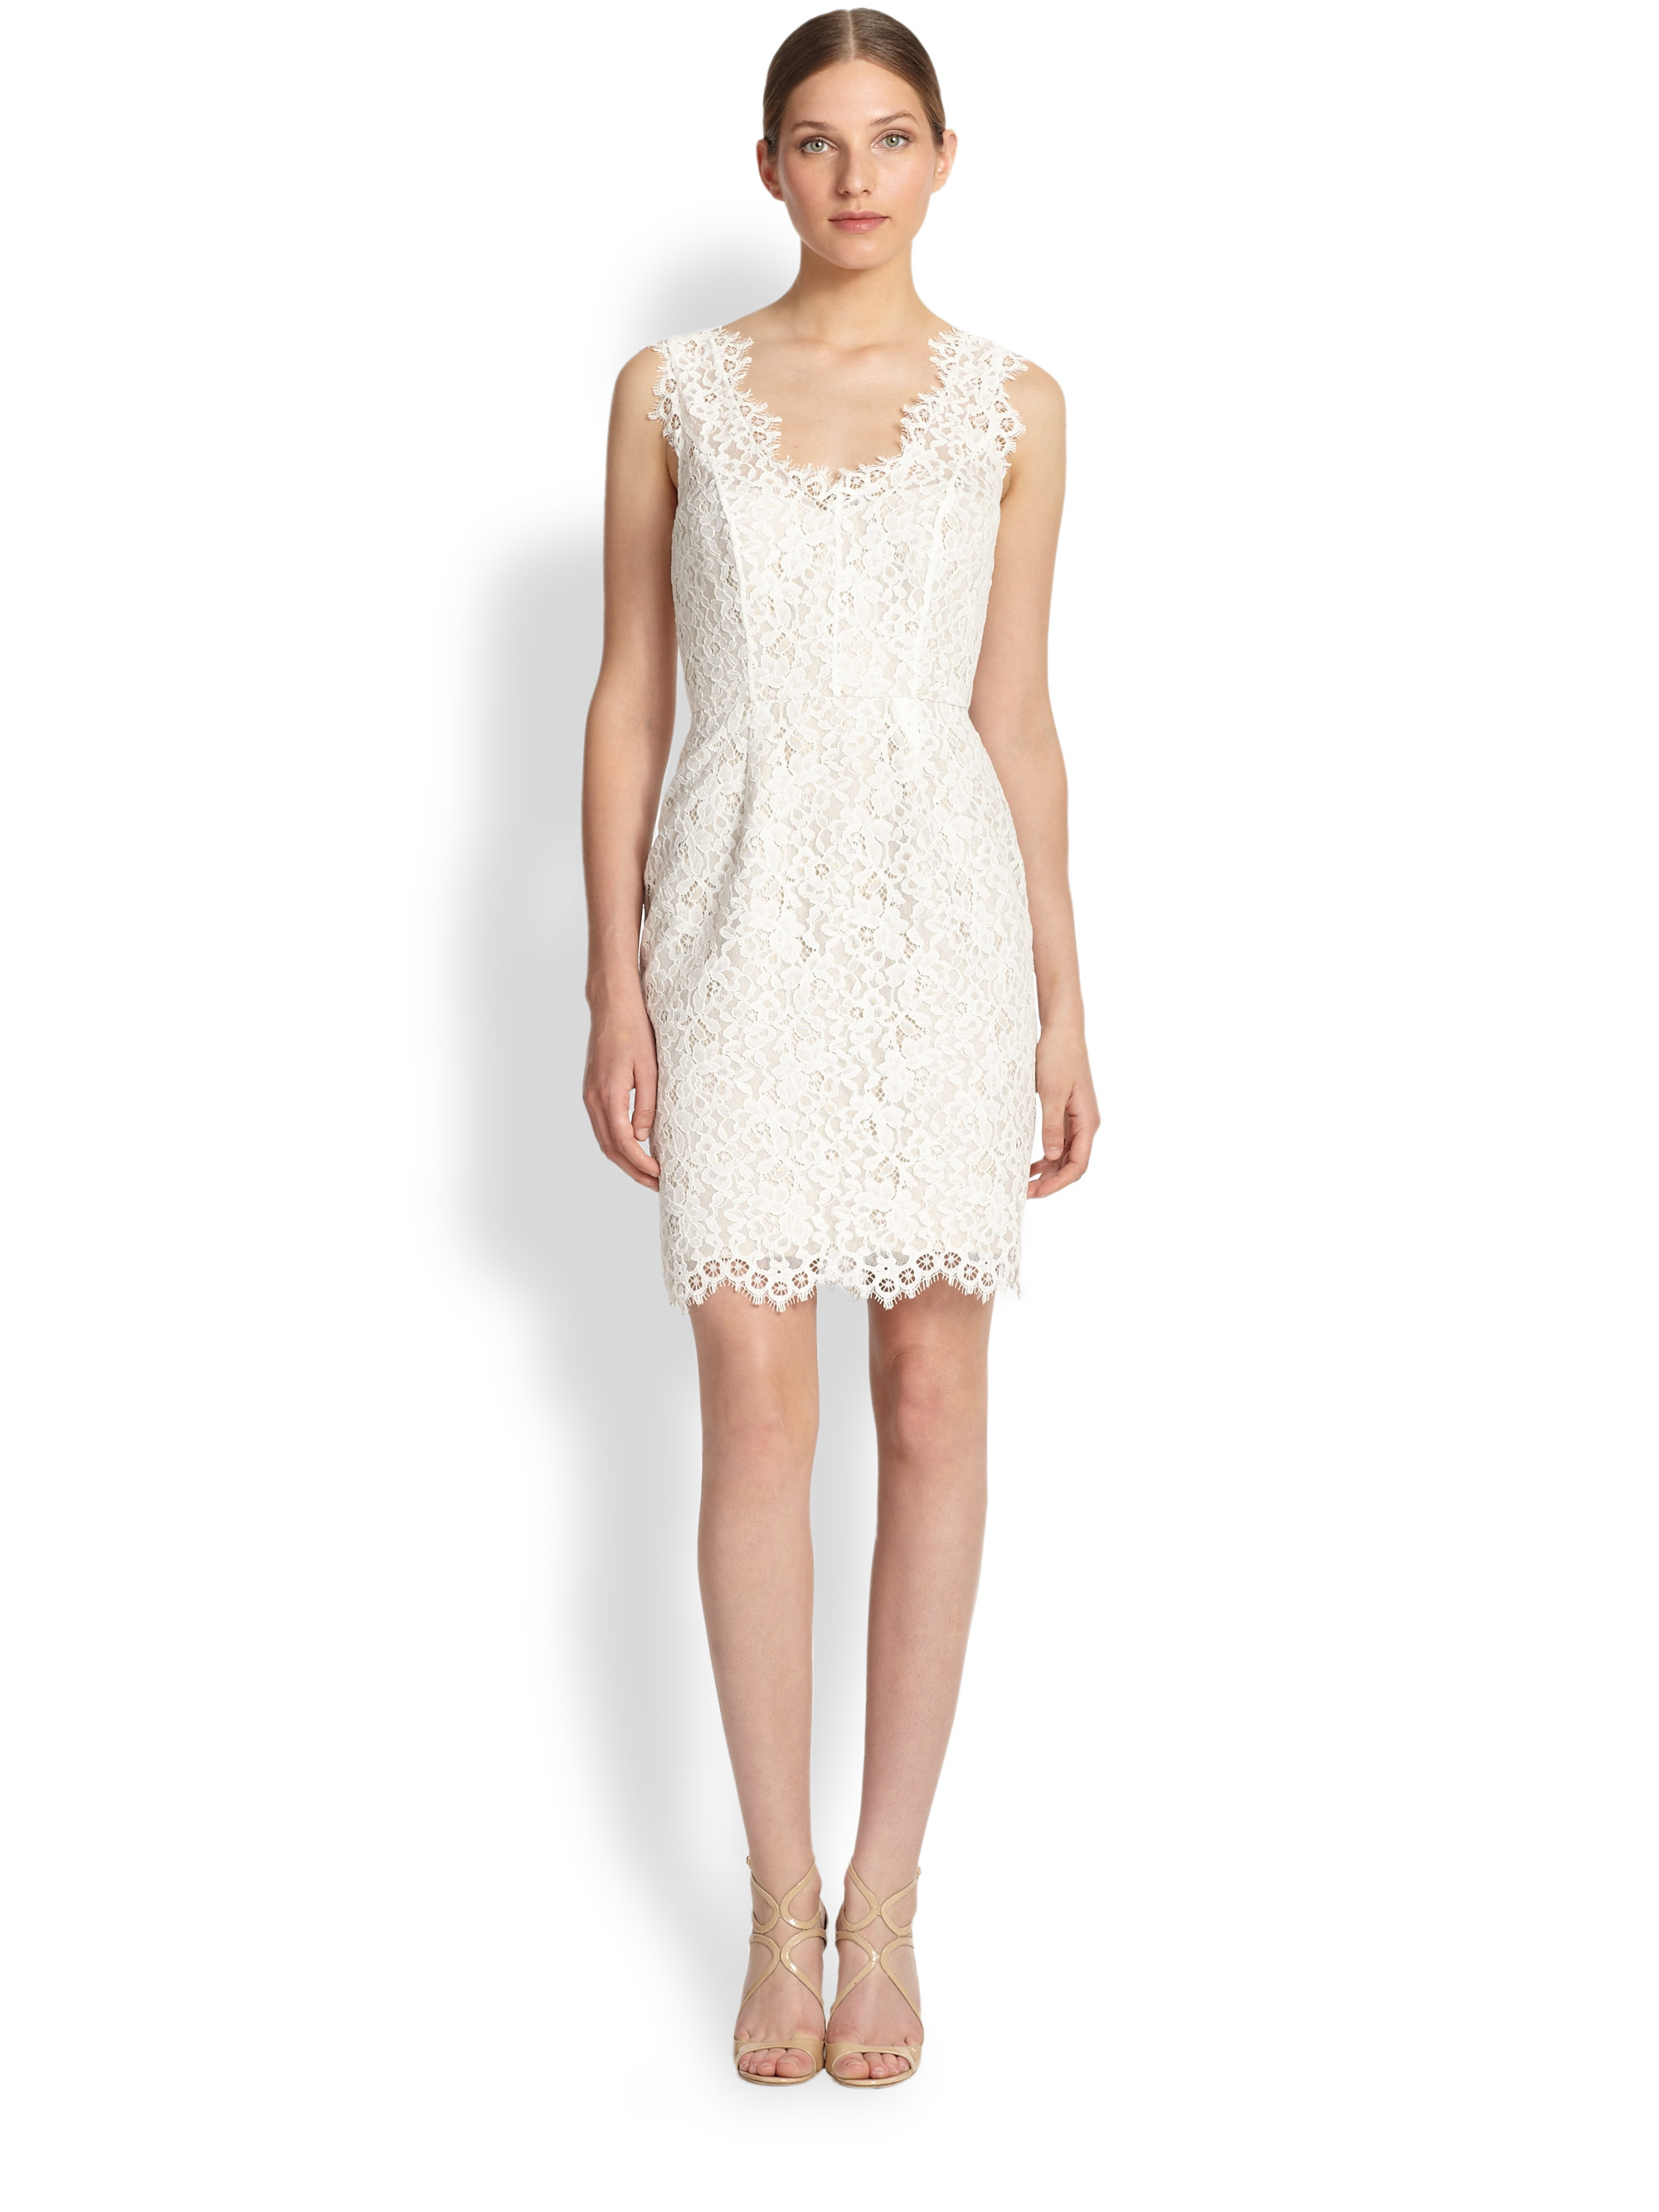 Shoshanna Rose Lace Cocktail Dress in White | Lyst